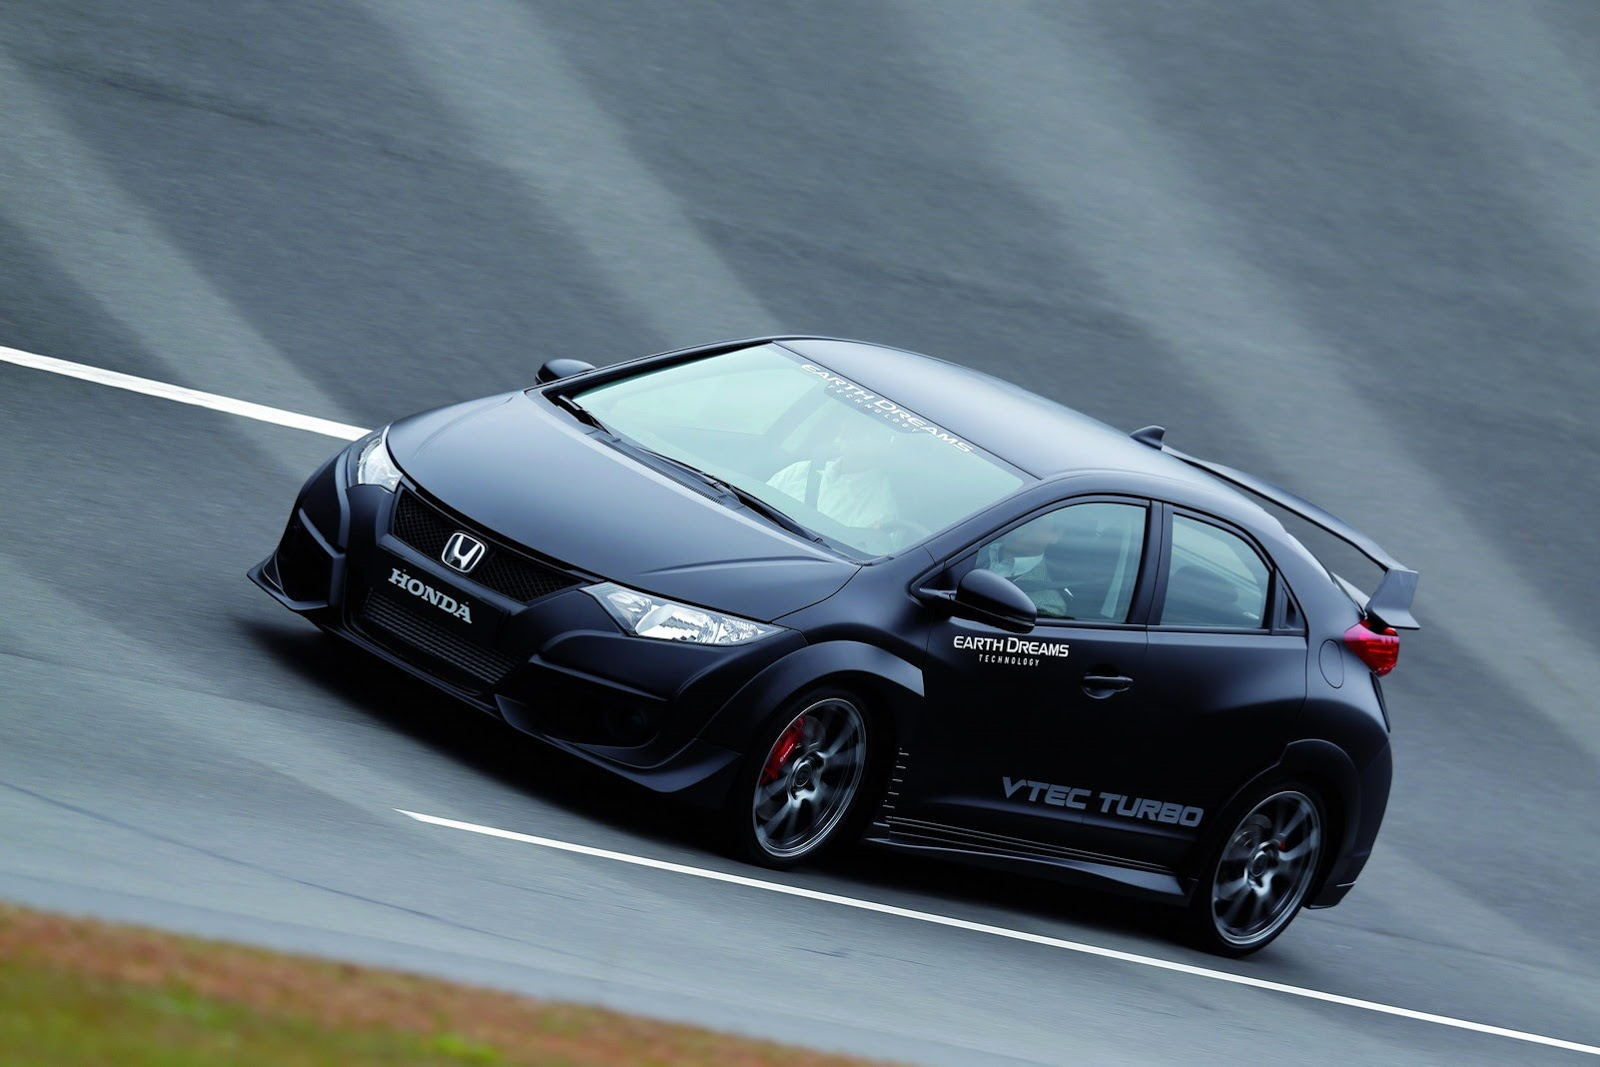 honda reveals new civic type r with vtec turbo engine video autoevolution. Black Bedroom Furniture Sets. Home Design Ideas